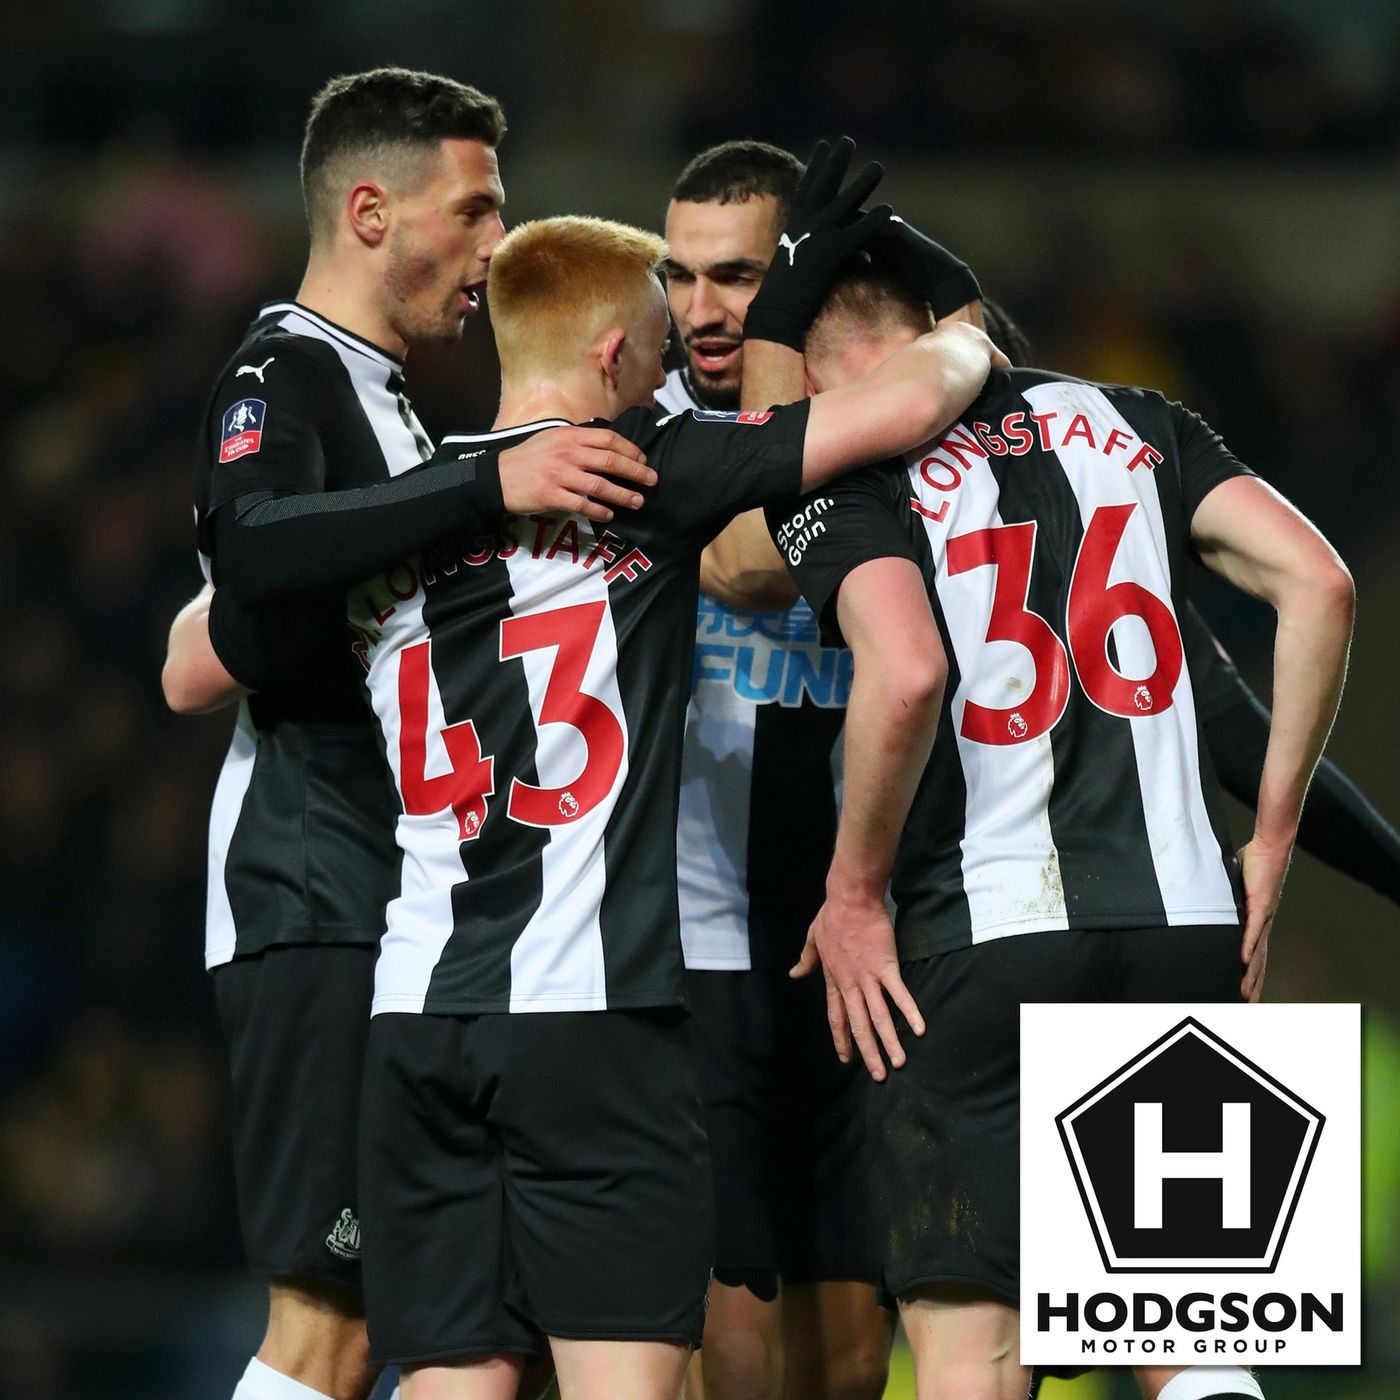 West Brom vs Newcastle United - A quick preview